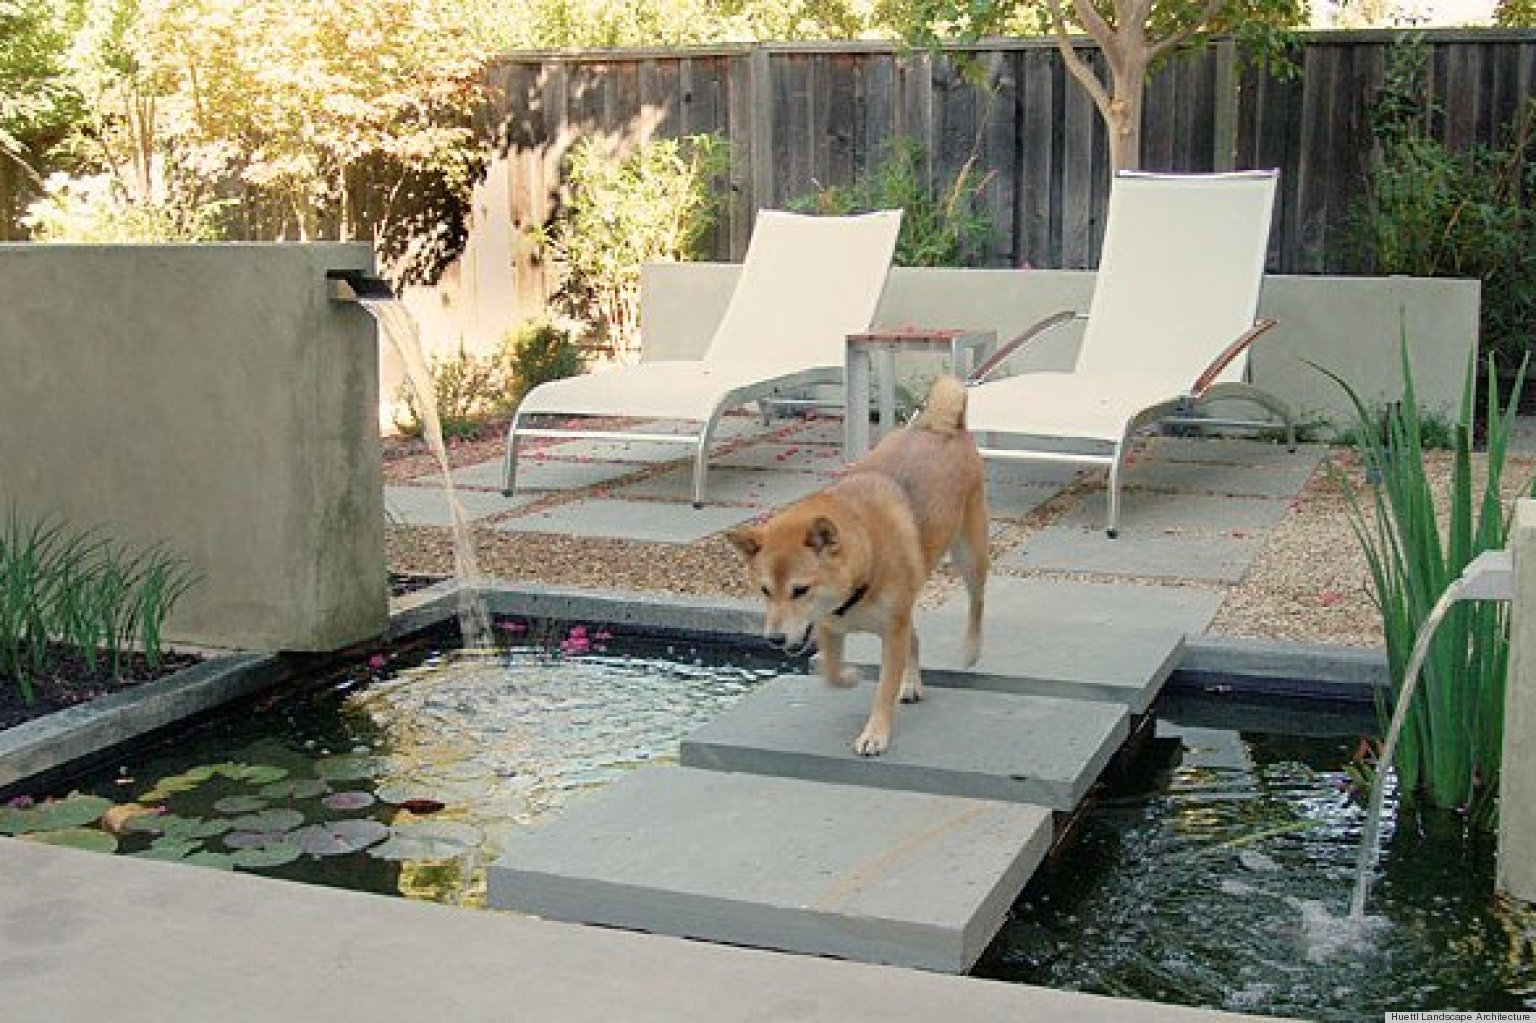 Backyard Dogs 8 backyard ideas to delight your dog | huffpost